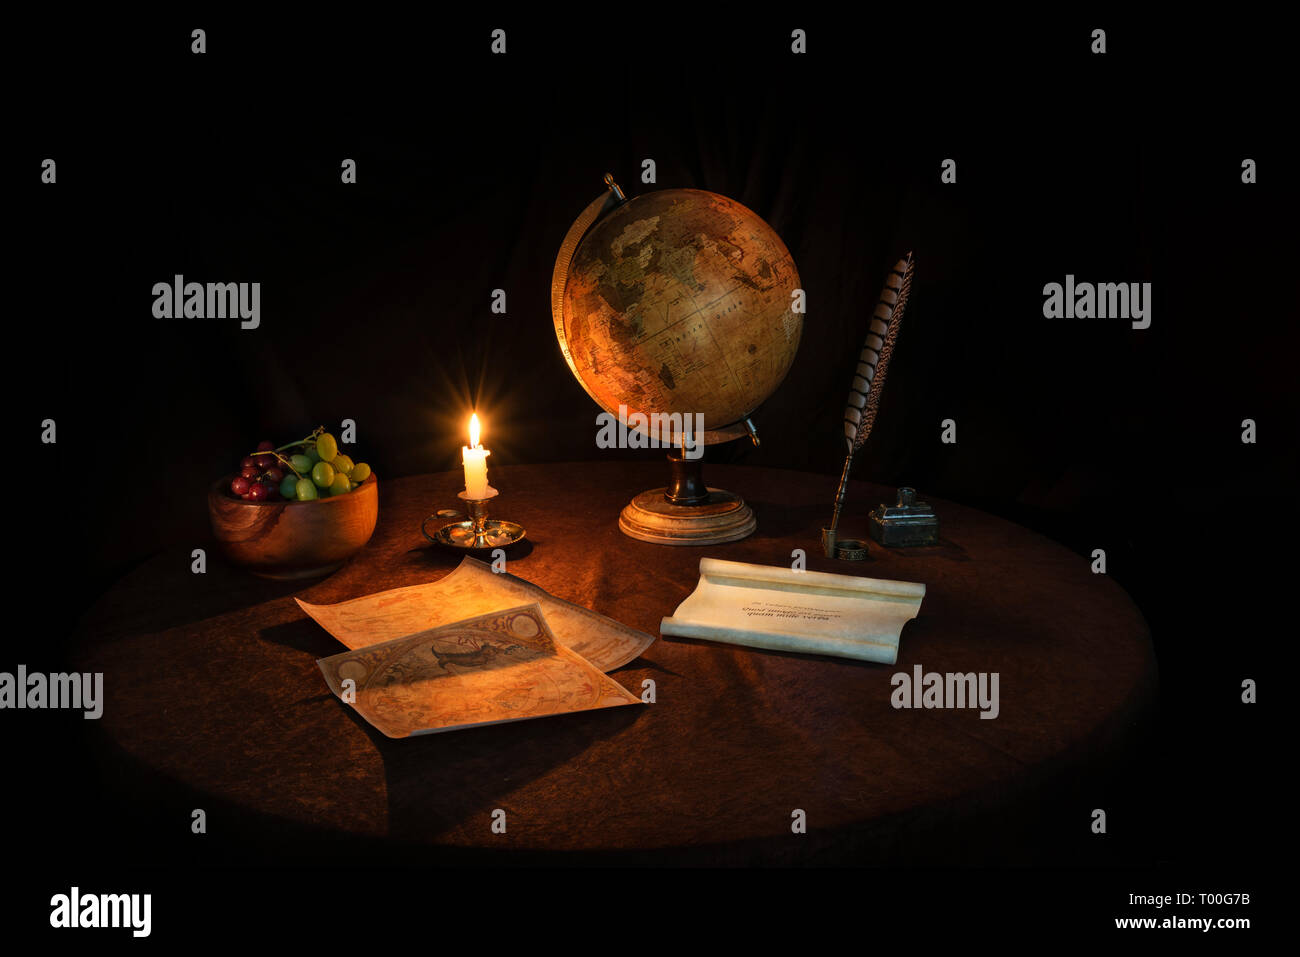 Still Life by candlelight with globe quill pen vellum scroll and fruit bowl - Stock Image